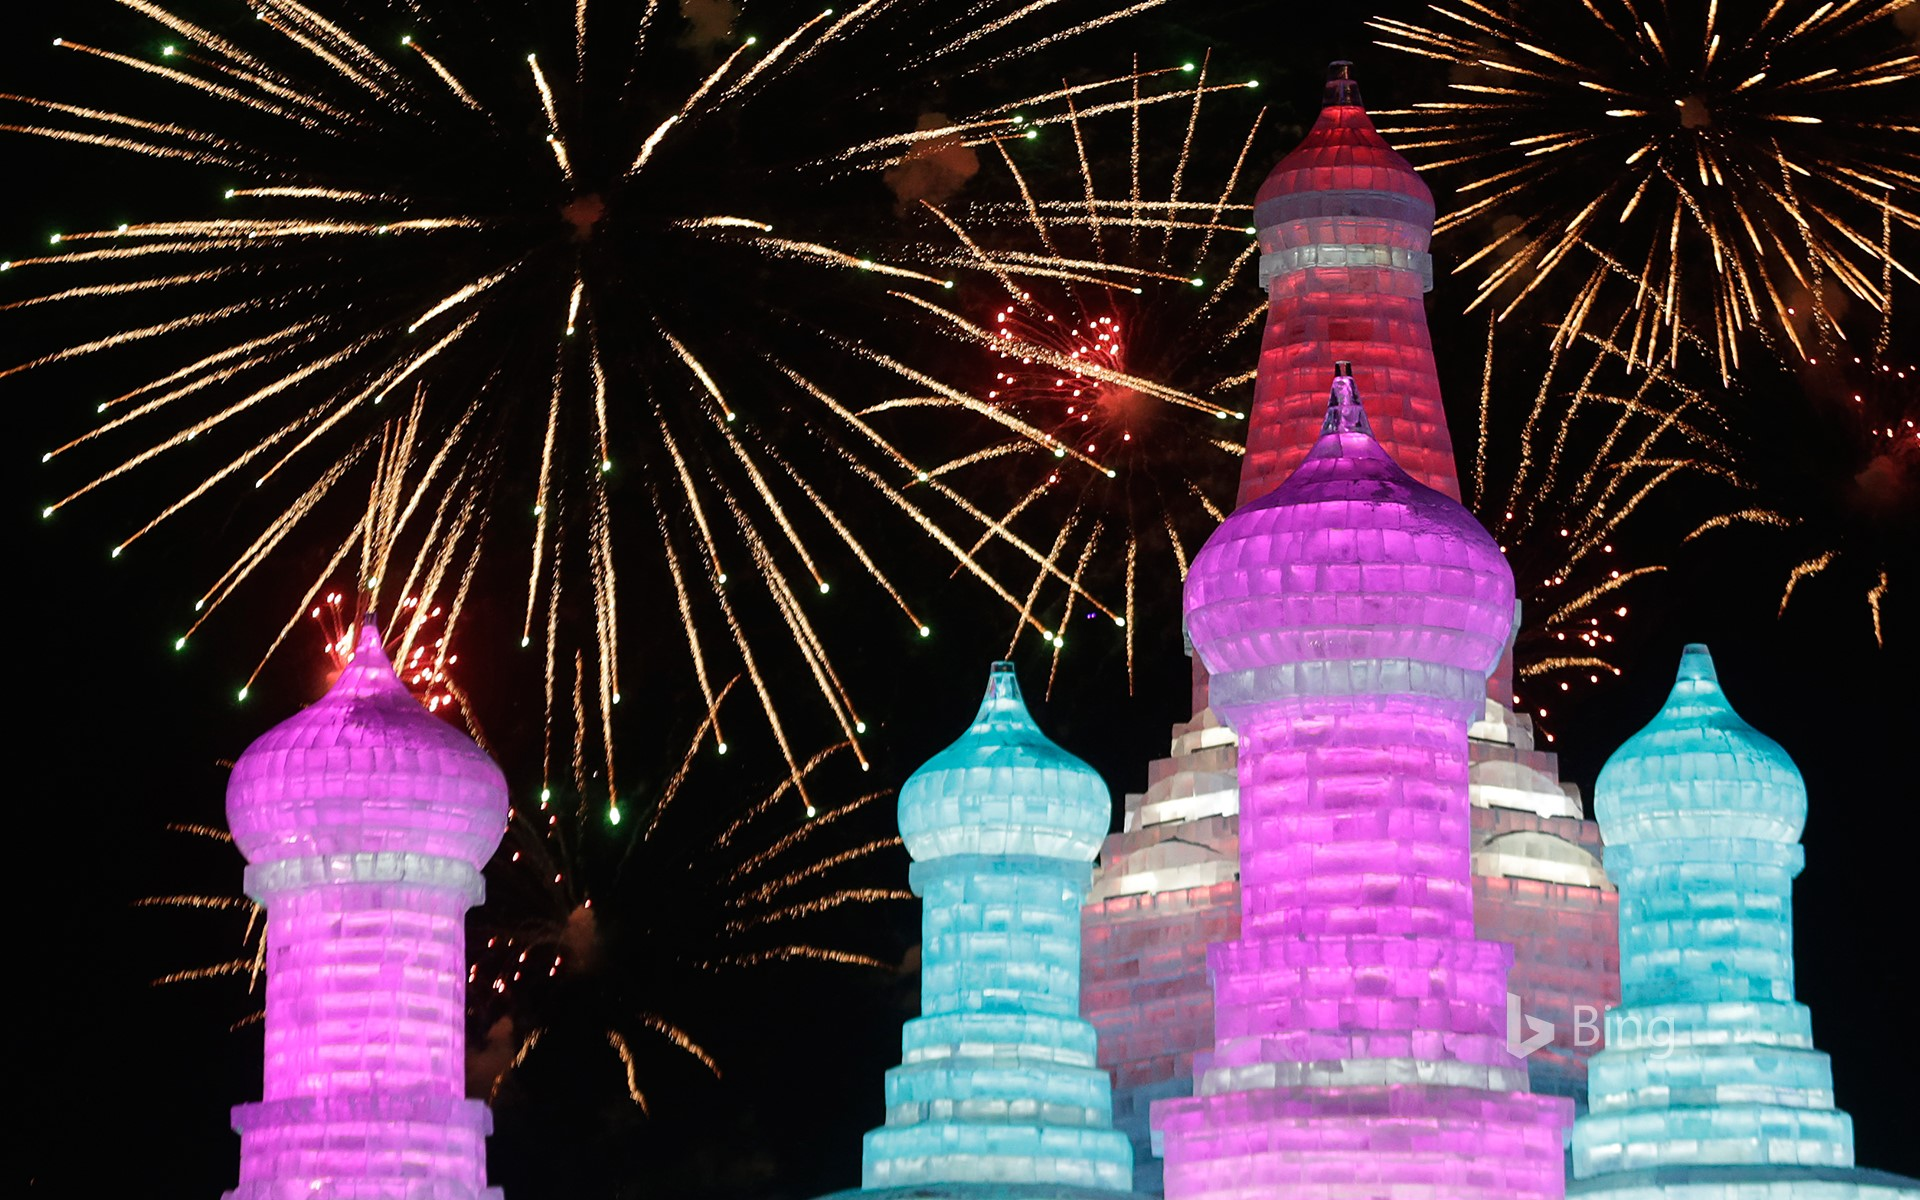 [Great Cold Today] Fireworks in full bloom at Harbin International Snow and Ice Festival, Harbin, Heilongjiang